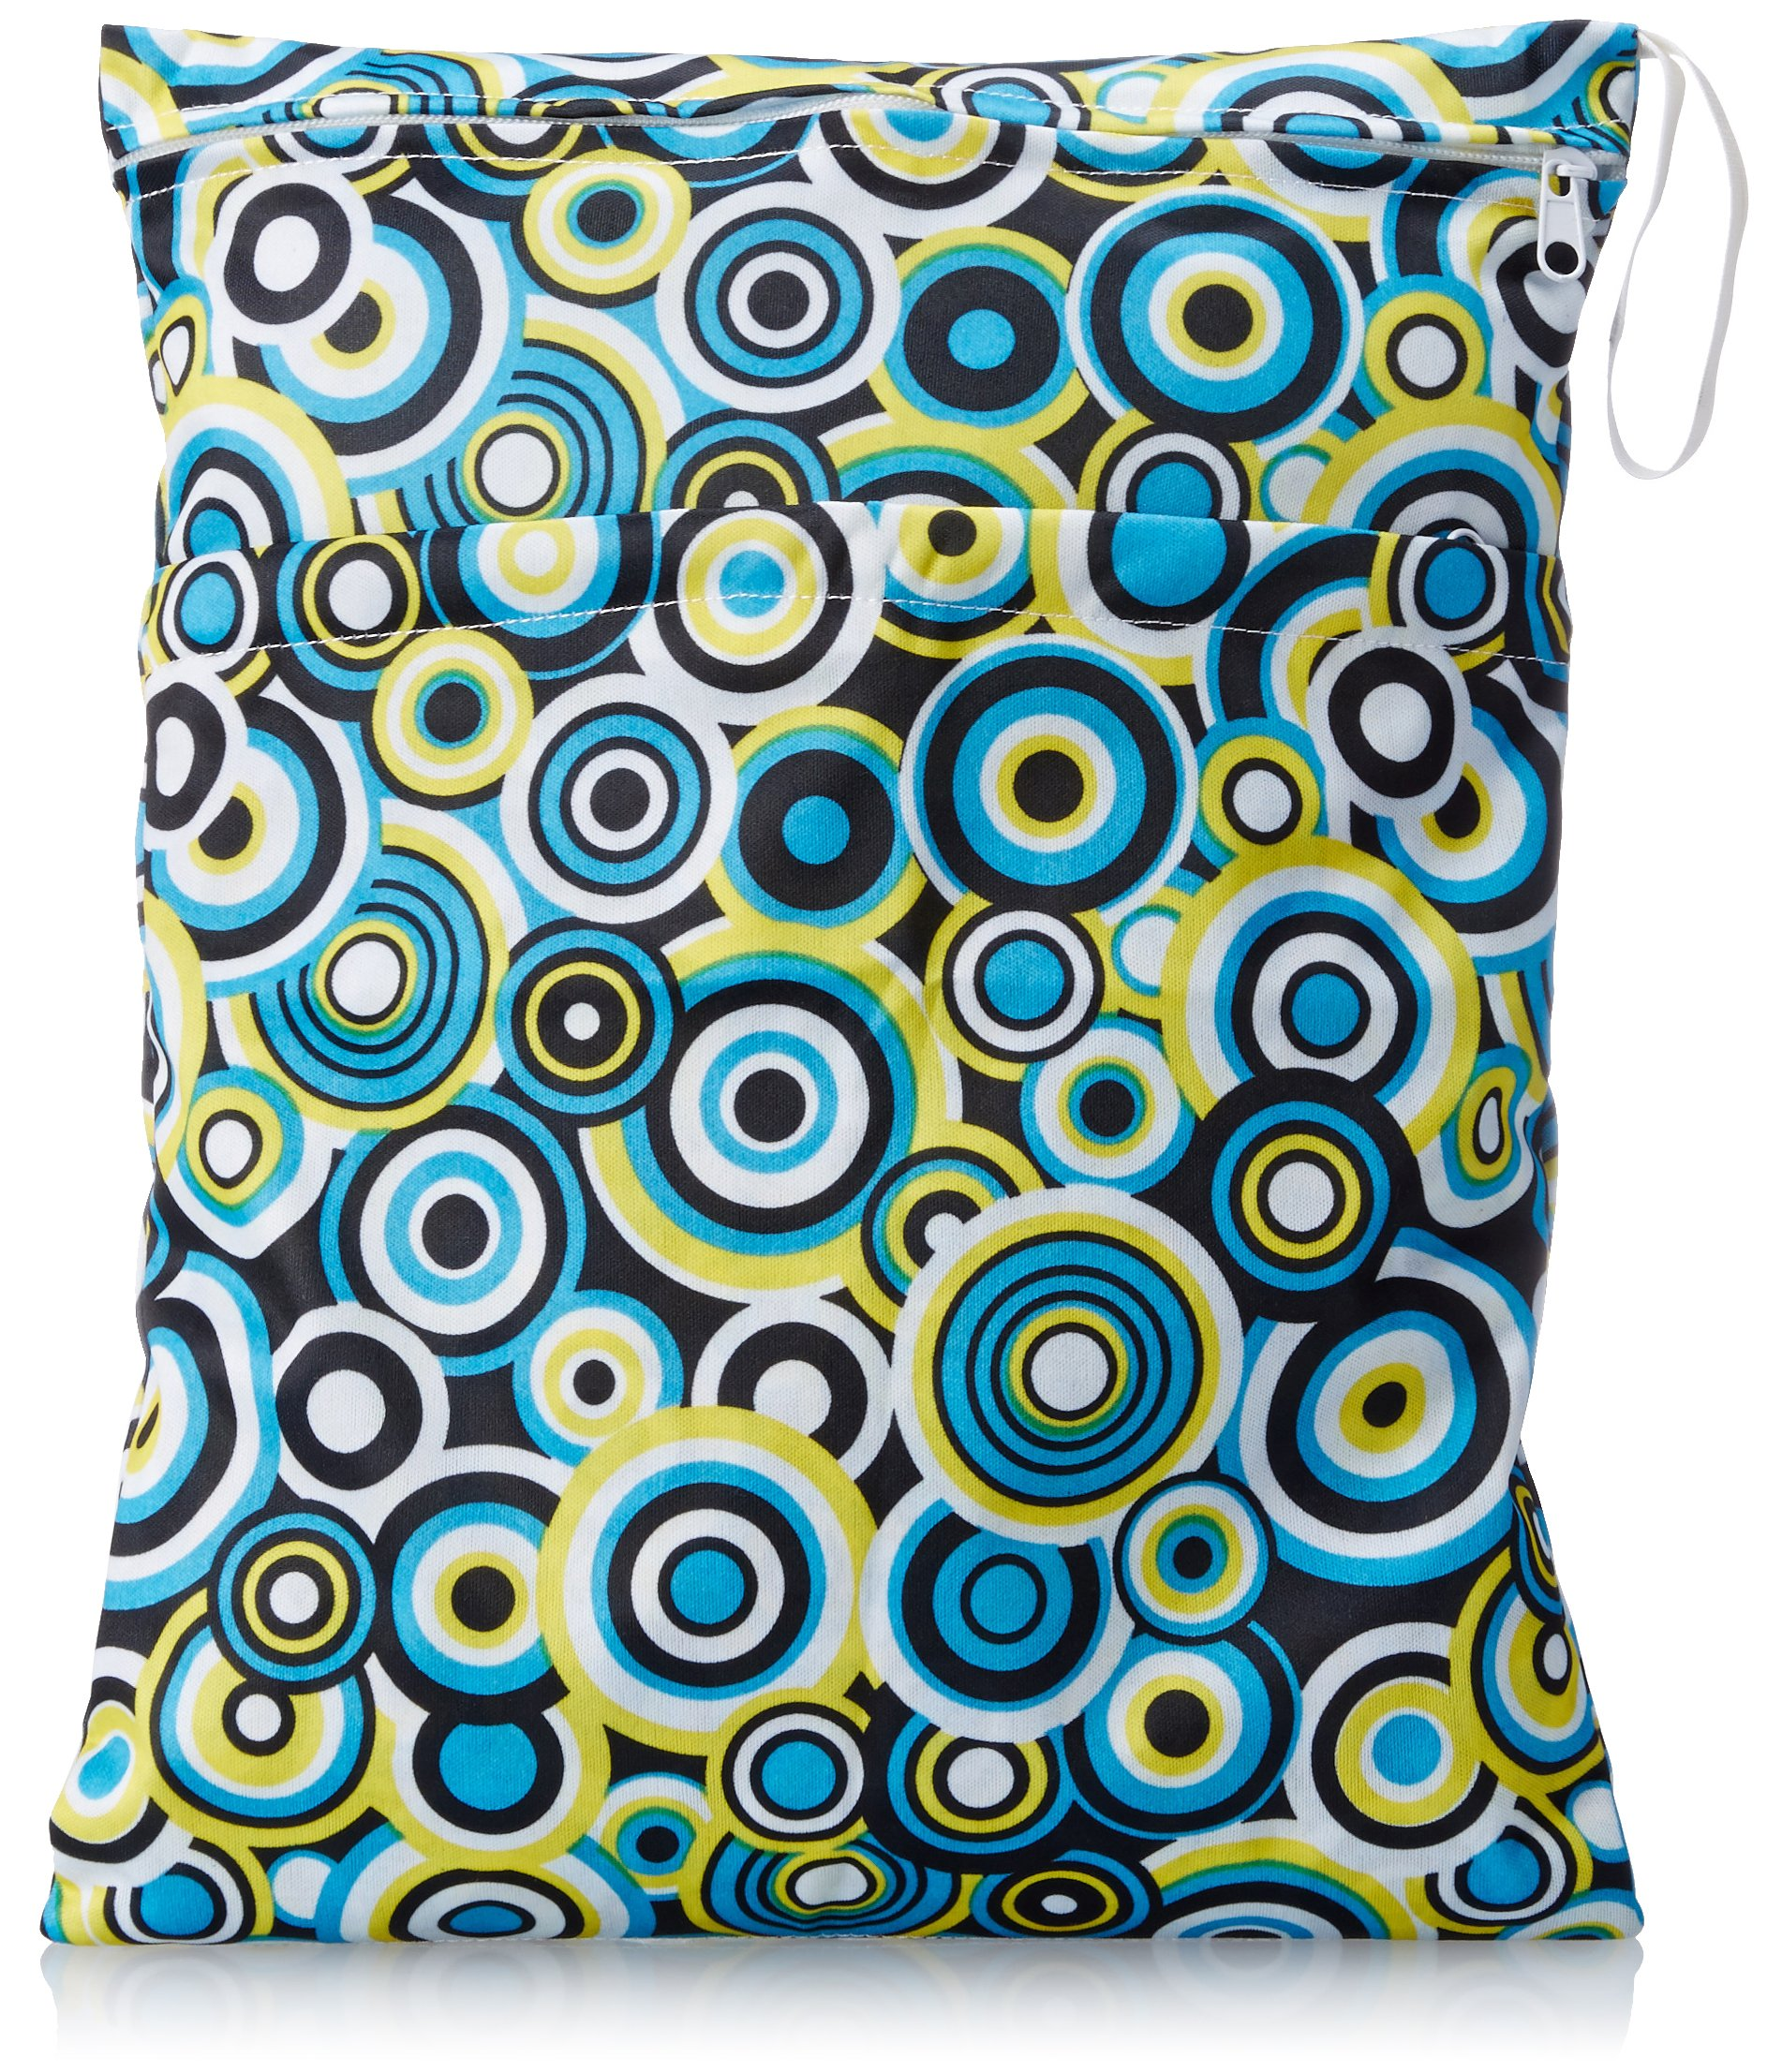 PURE STYLE Girlfriends Women's Wet Bag, Blue/Yellow Circles, One Size